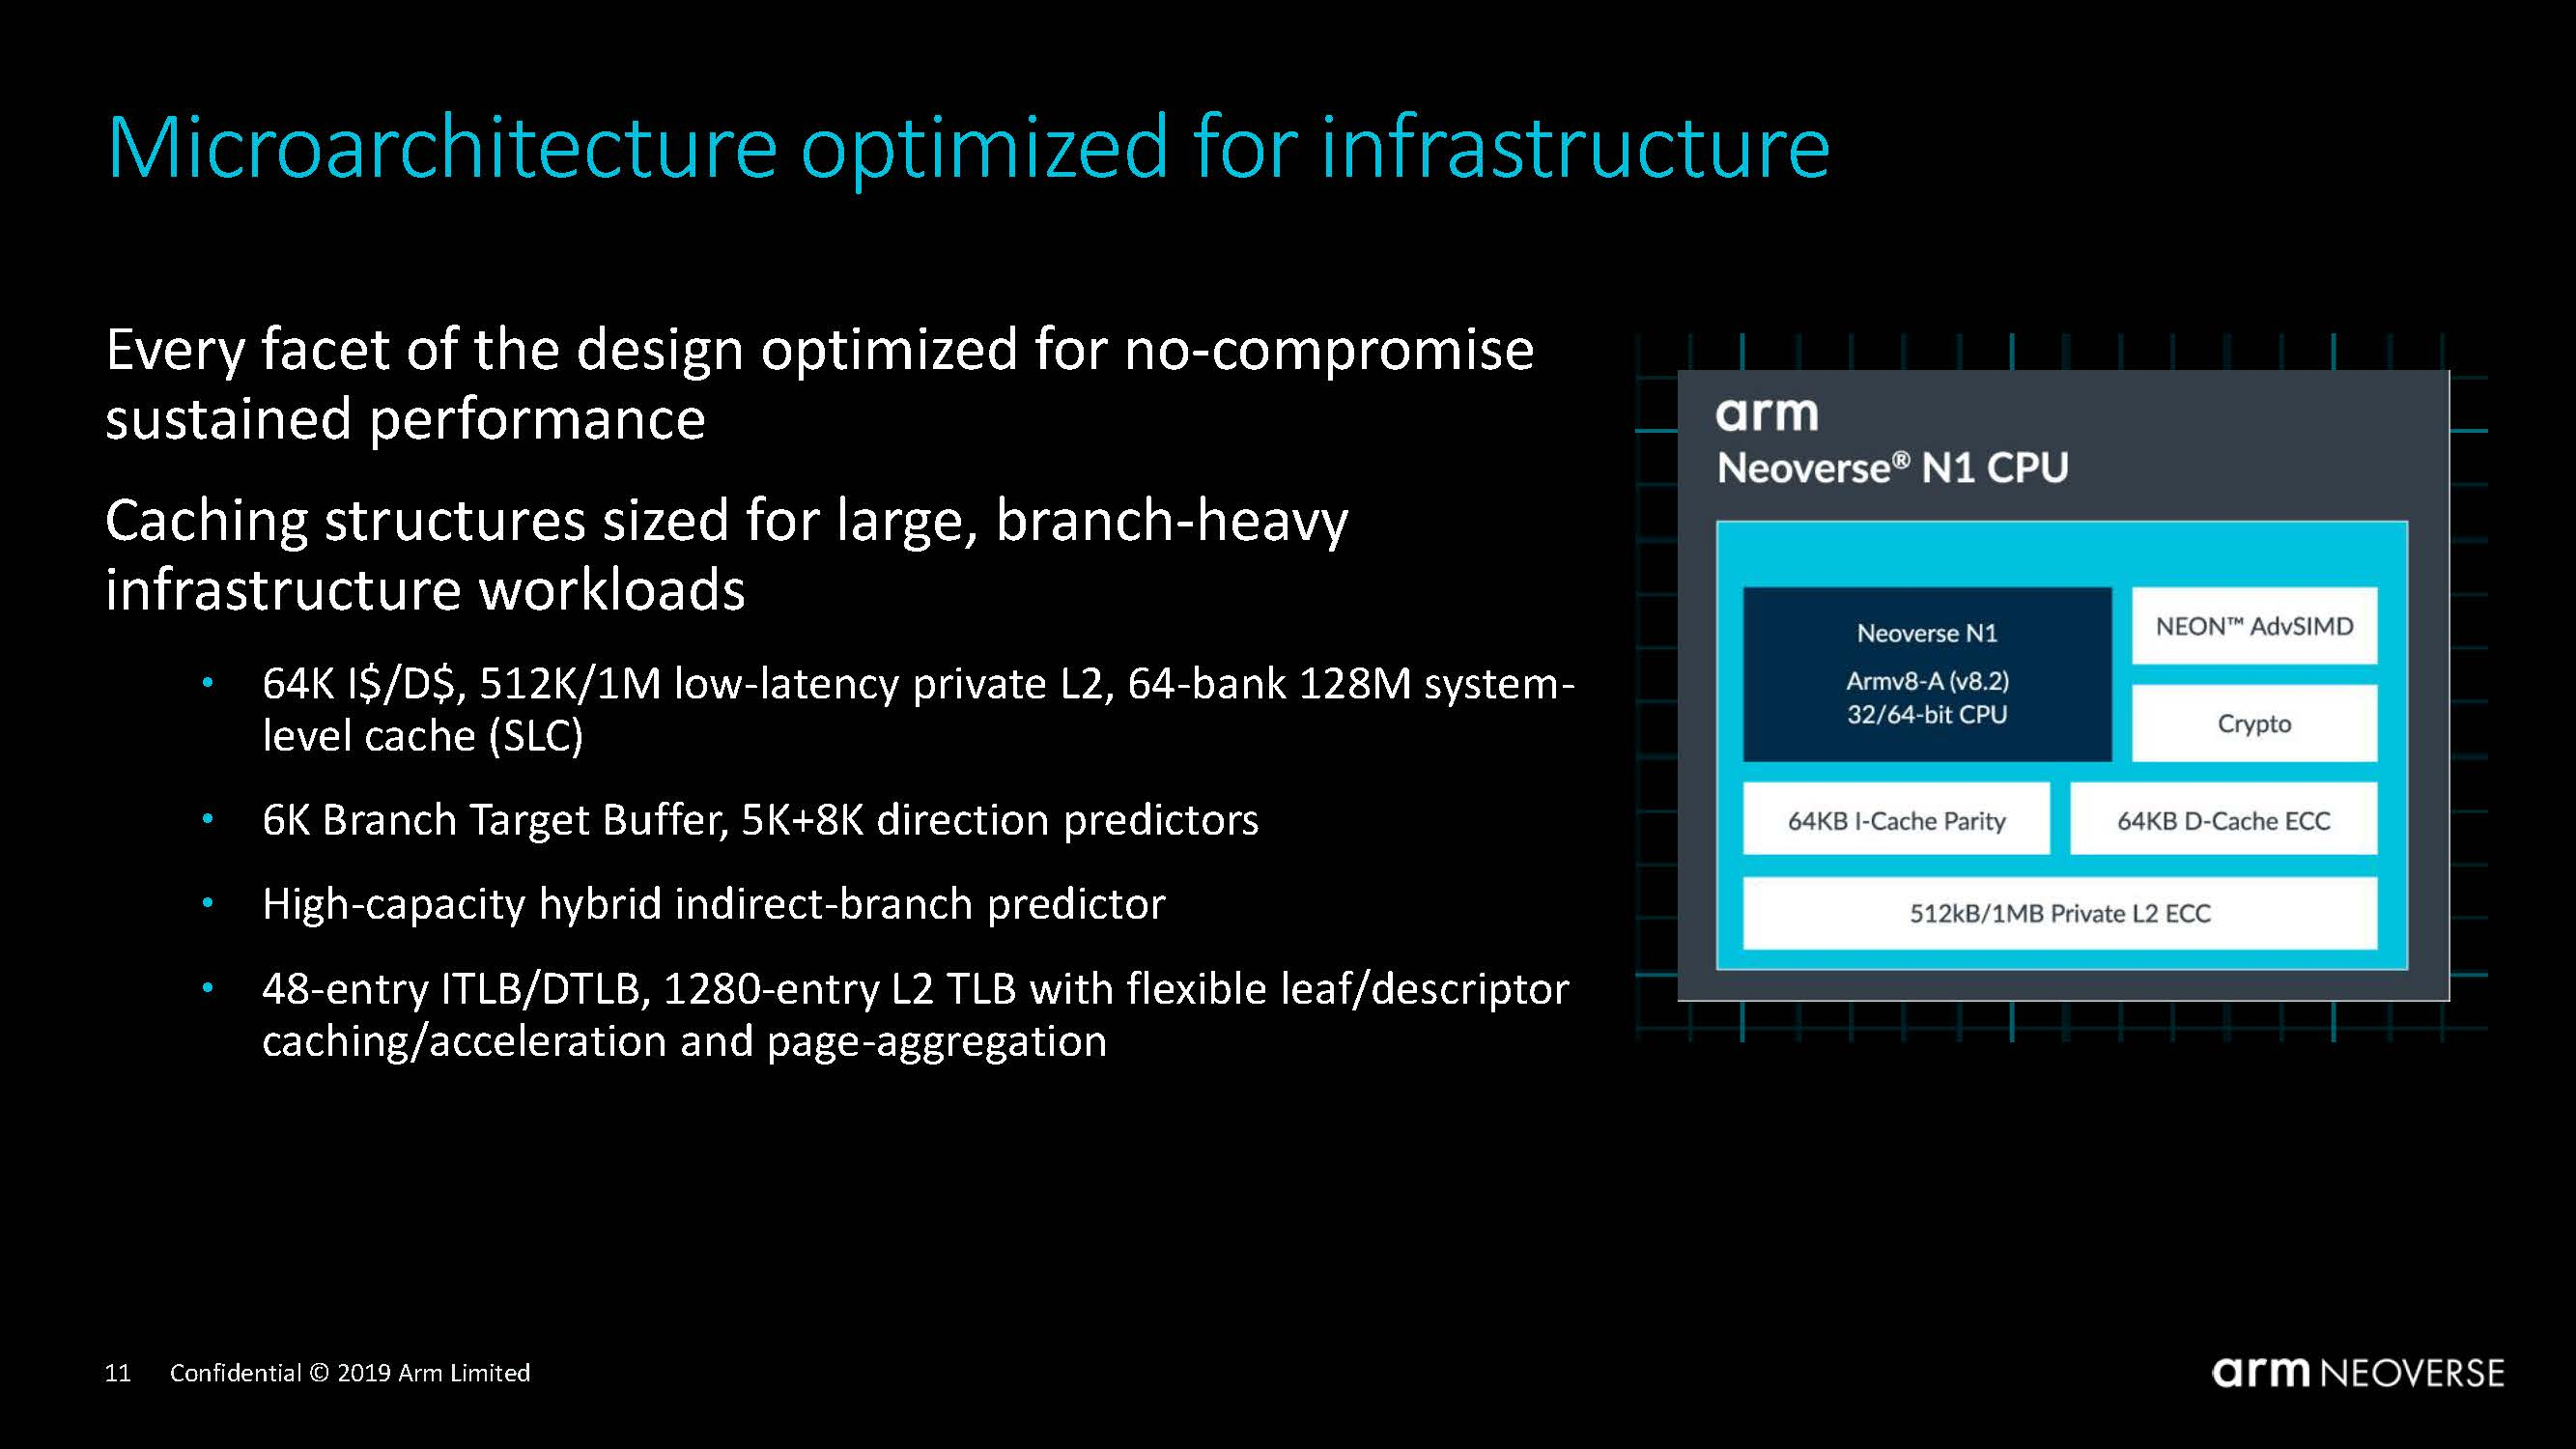 A Journey to Next-Gen Arm Neoverse N1 and E1 Cores - Page 2 of 5